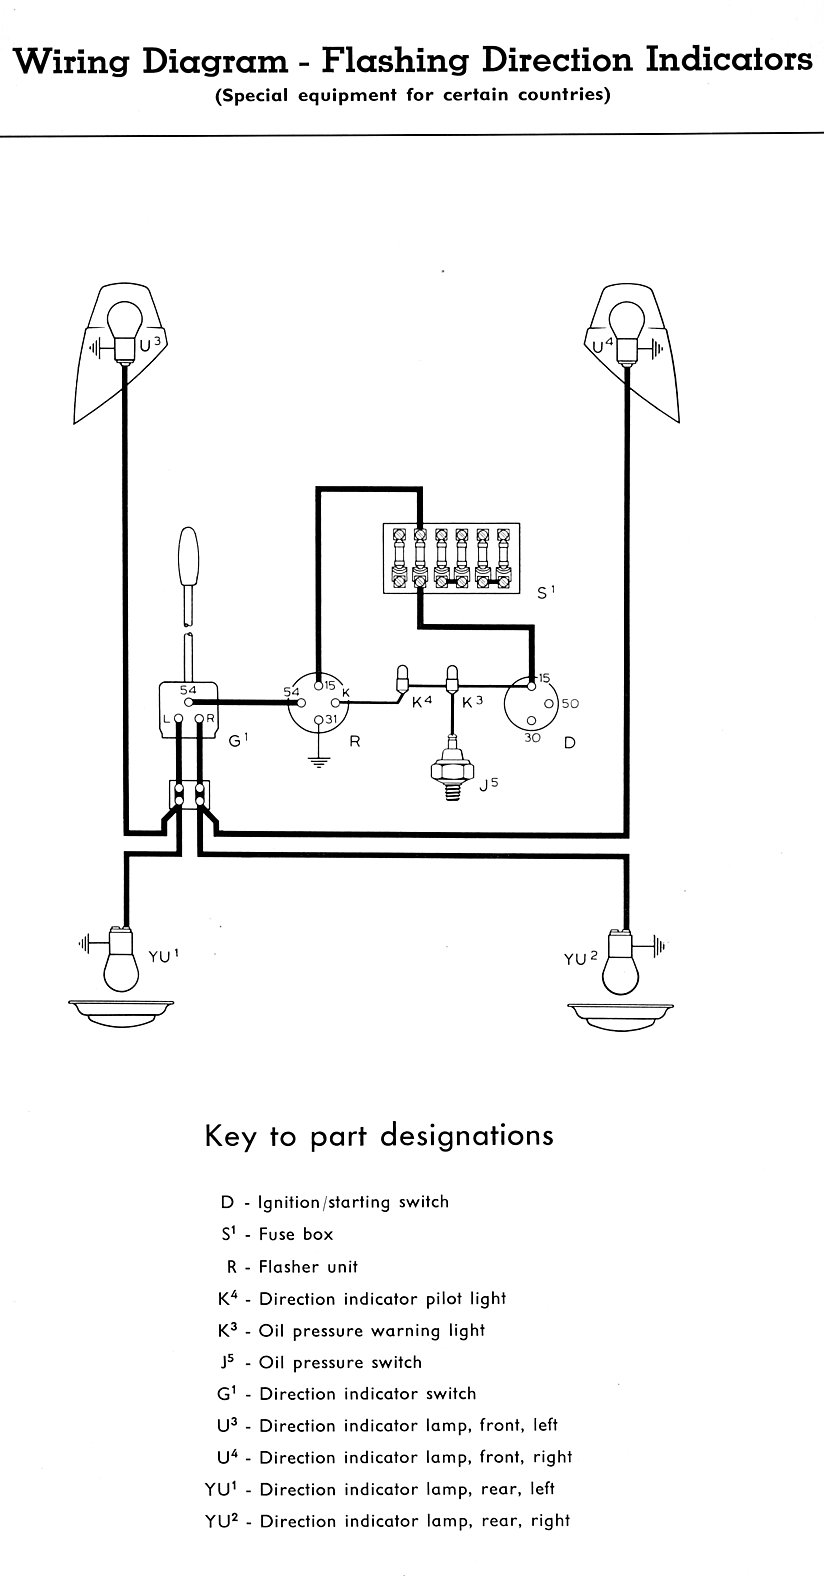 medium resolution of 1966 porsche 912 wiring diagram schematic wiring library rh 88 codingcommunity de wiring diagram for 1985 porsche 911 porsche 912 engine diagram